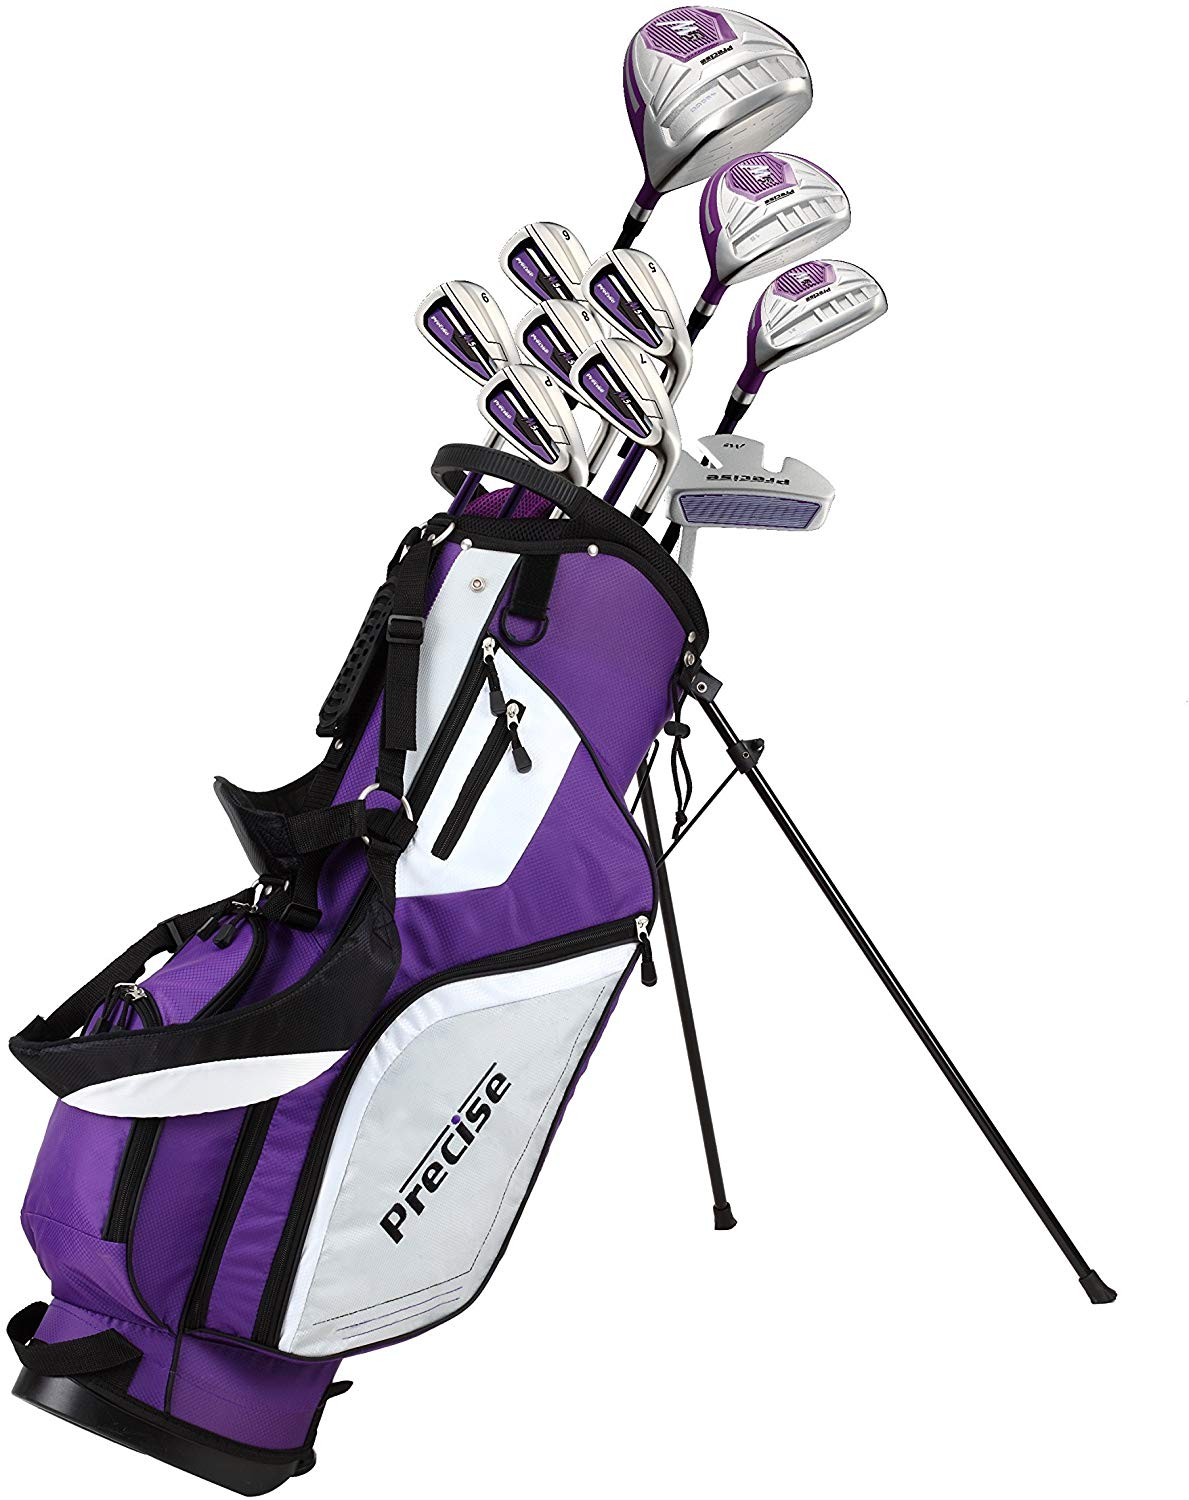 PreciseGolf Co. M5 Women's Complete Golf Club Set